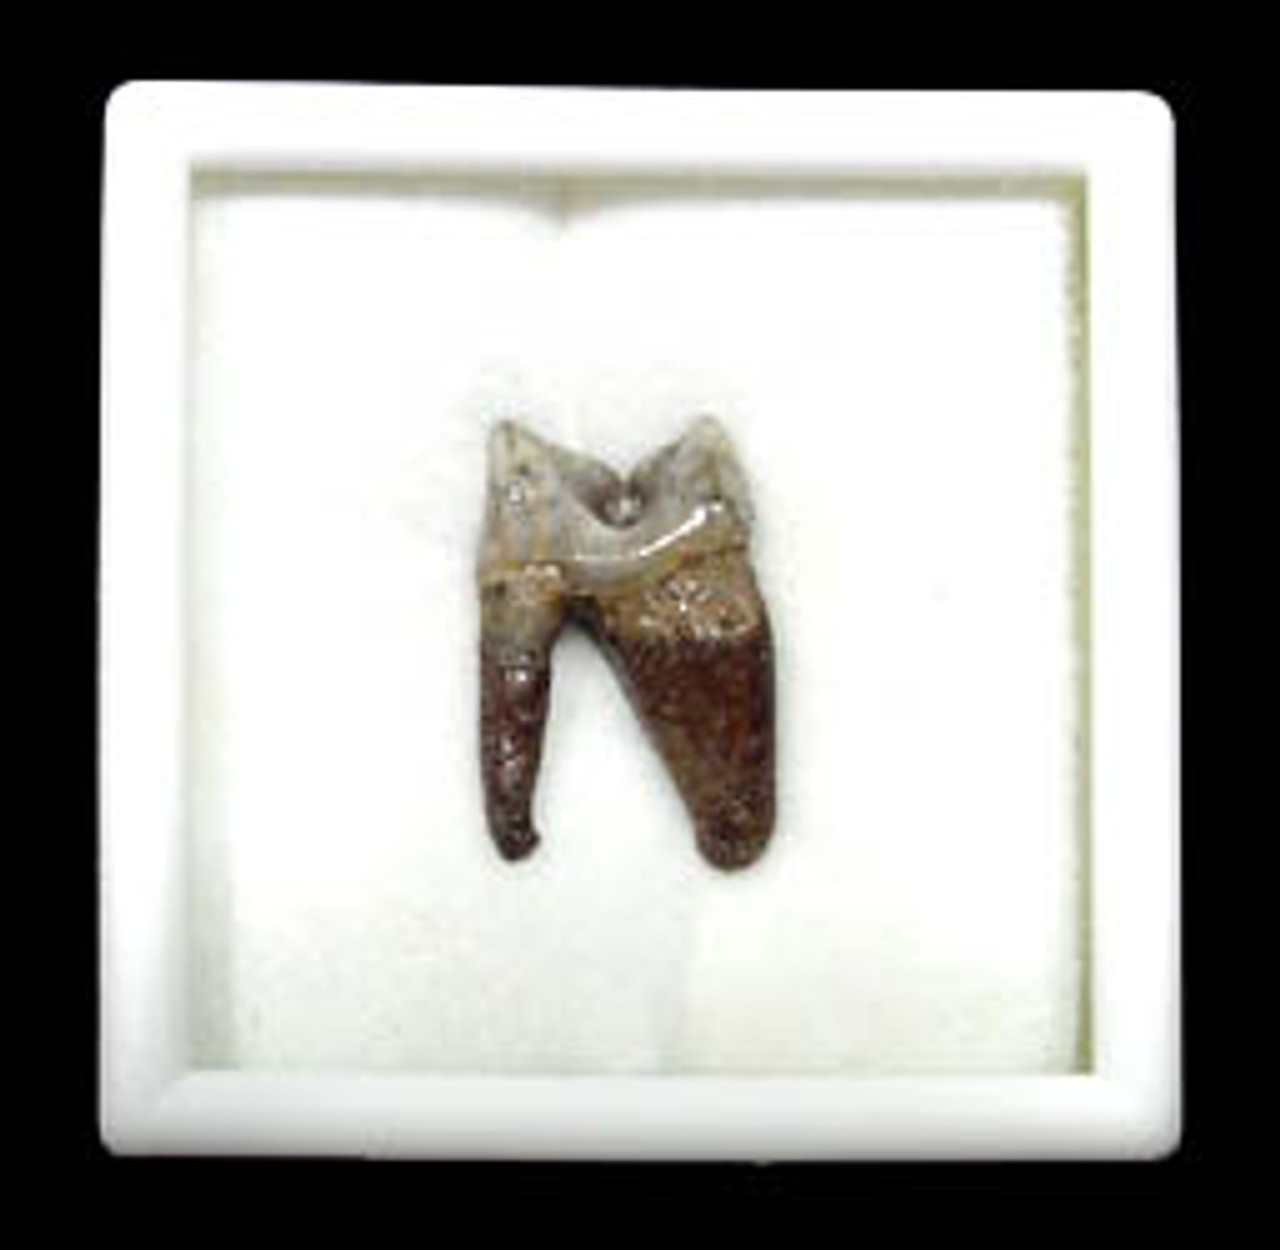 LM59-001 - ULTRA RARE INTACT CARNASSIAL TOOTH WITH ROOT FROM PLEISTOCENE MARGAY CAT